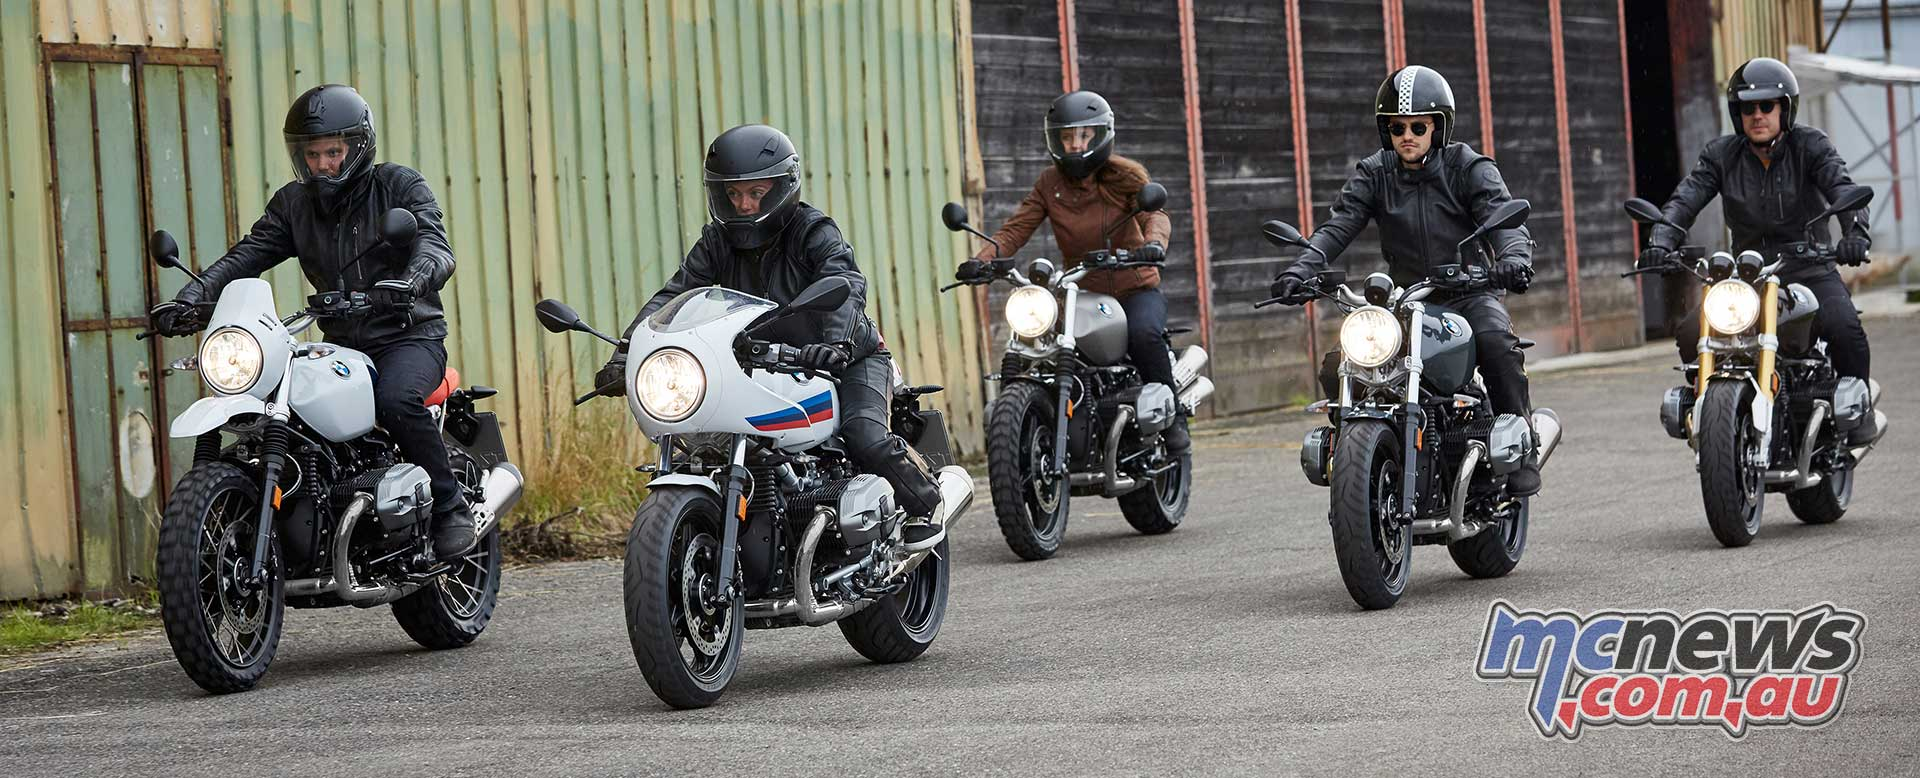 The Urban G/S is the latest machine to arrive in the BMW Heritage line